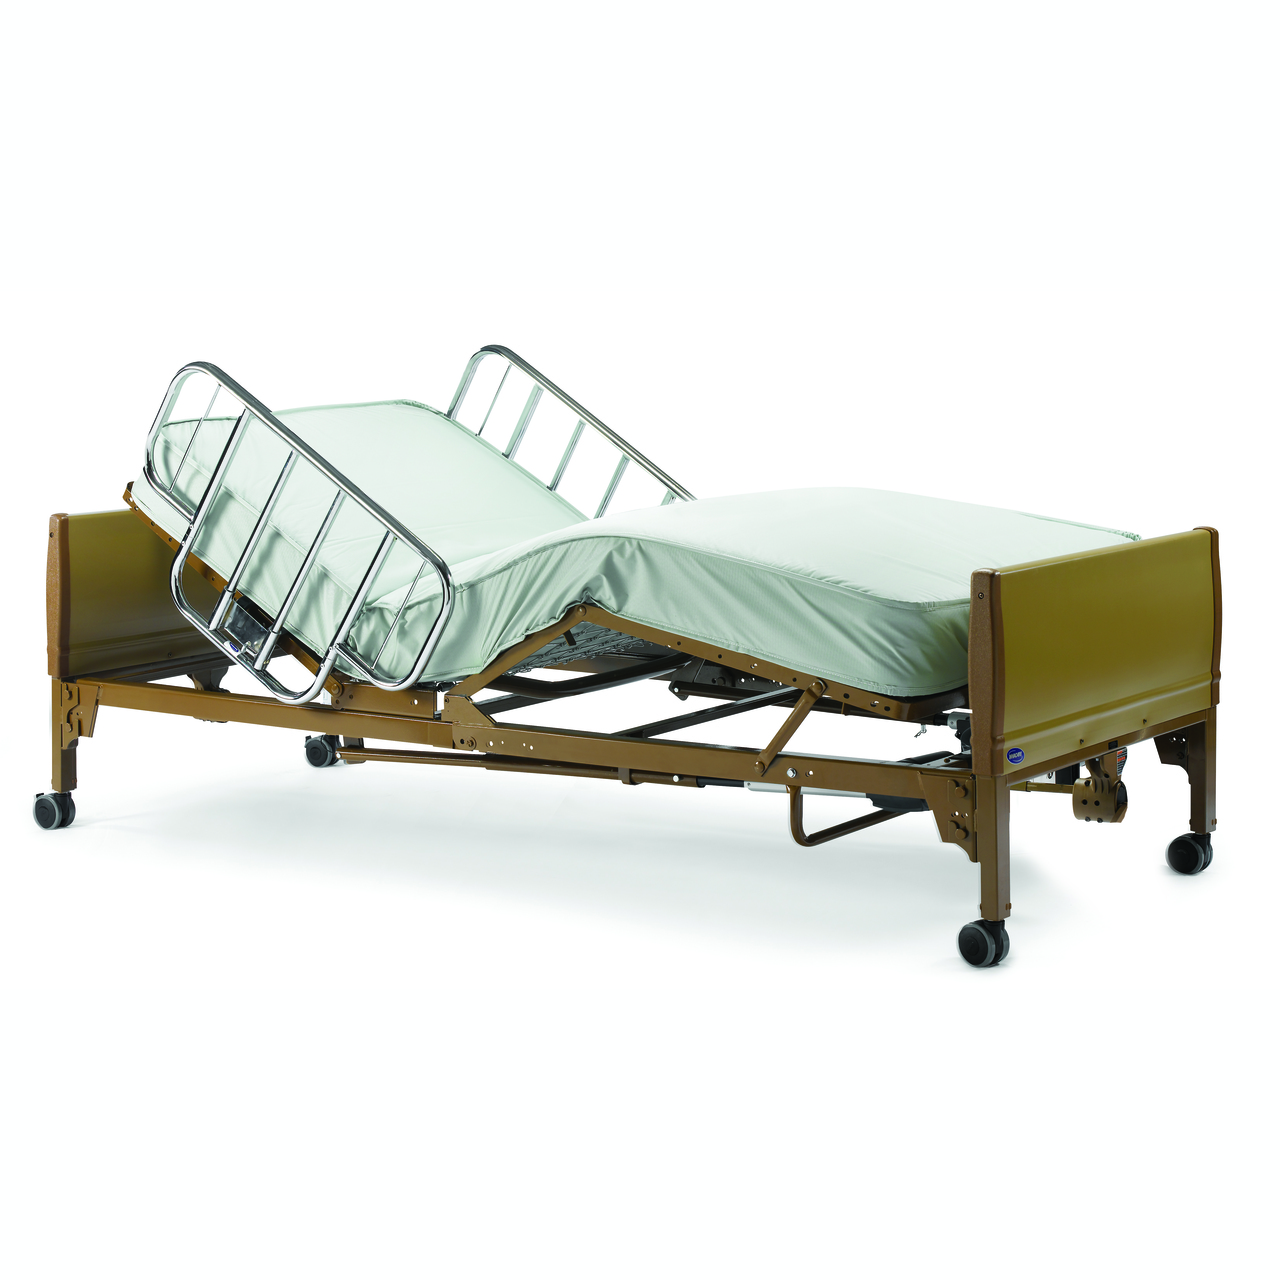 Hospital Beds For Sale New